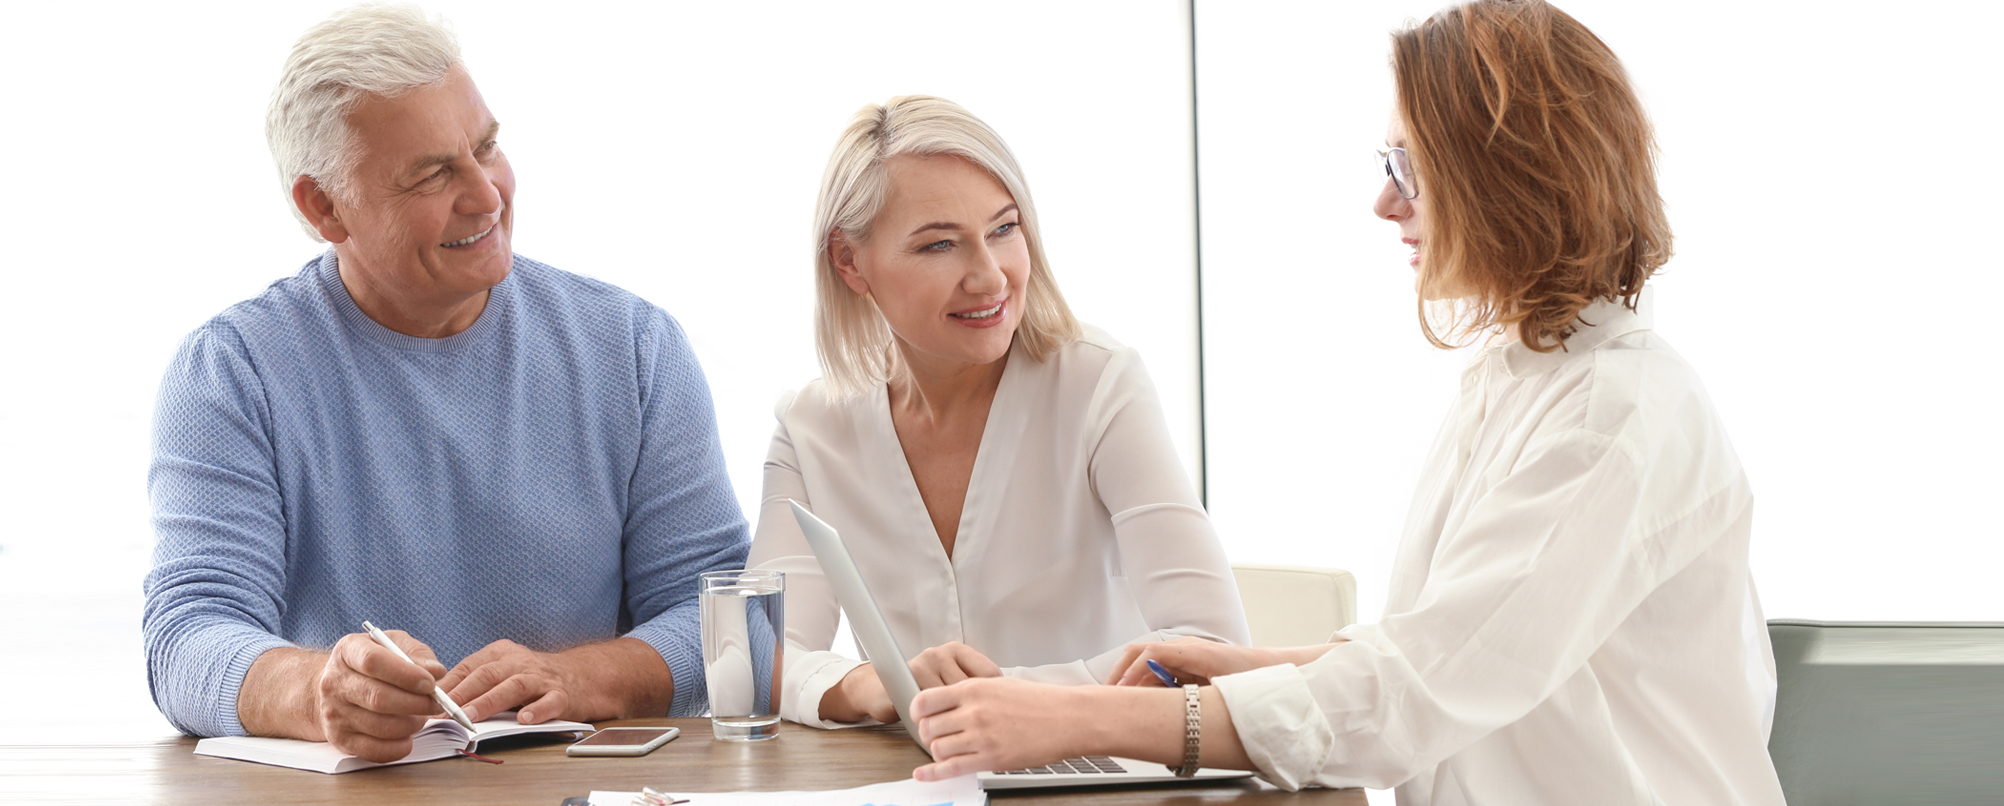 Senior couple consults with younger professional specialist using a laptop